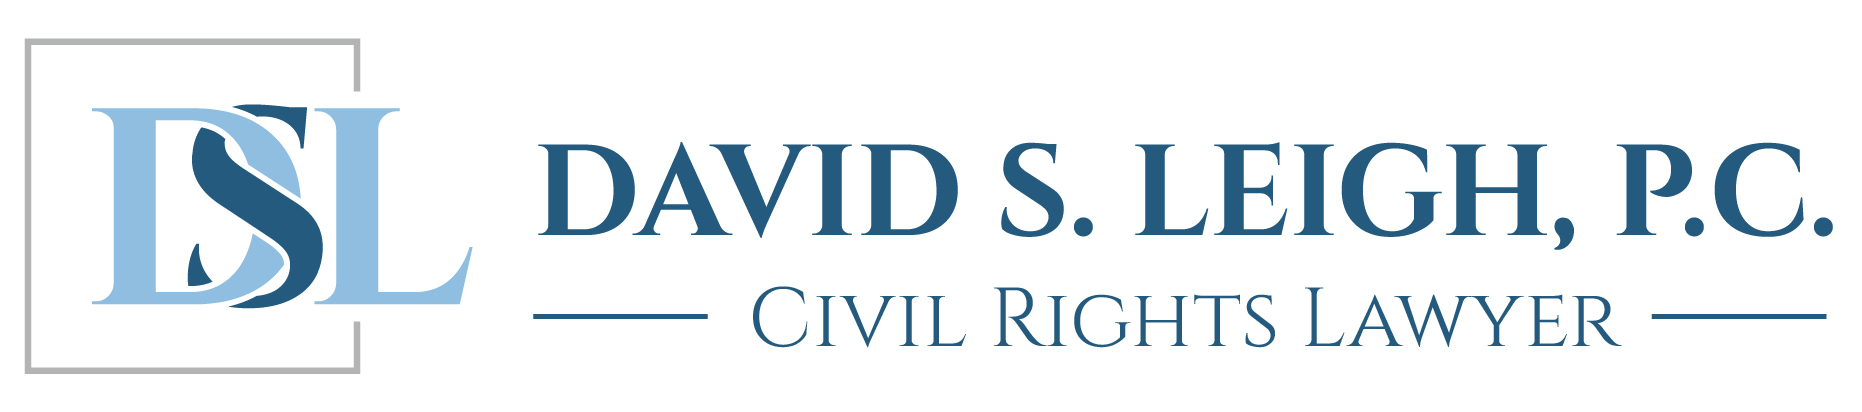 David S. Leigh, Civil Rights Lawyer